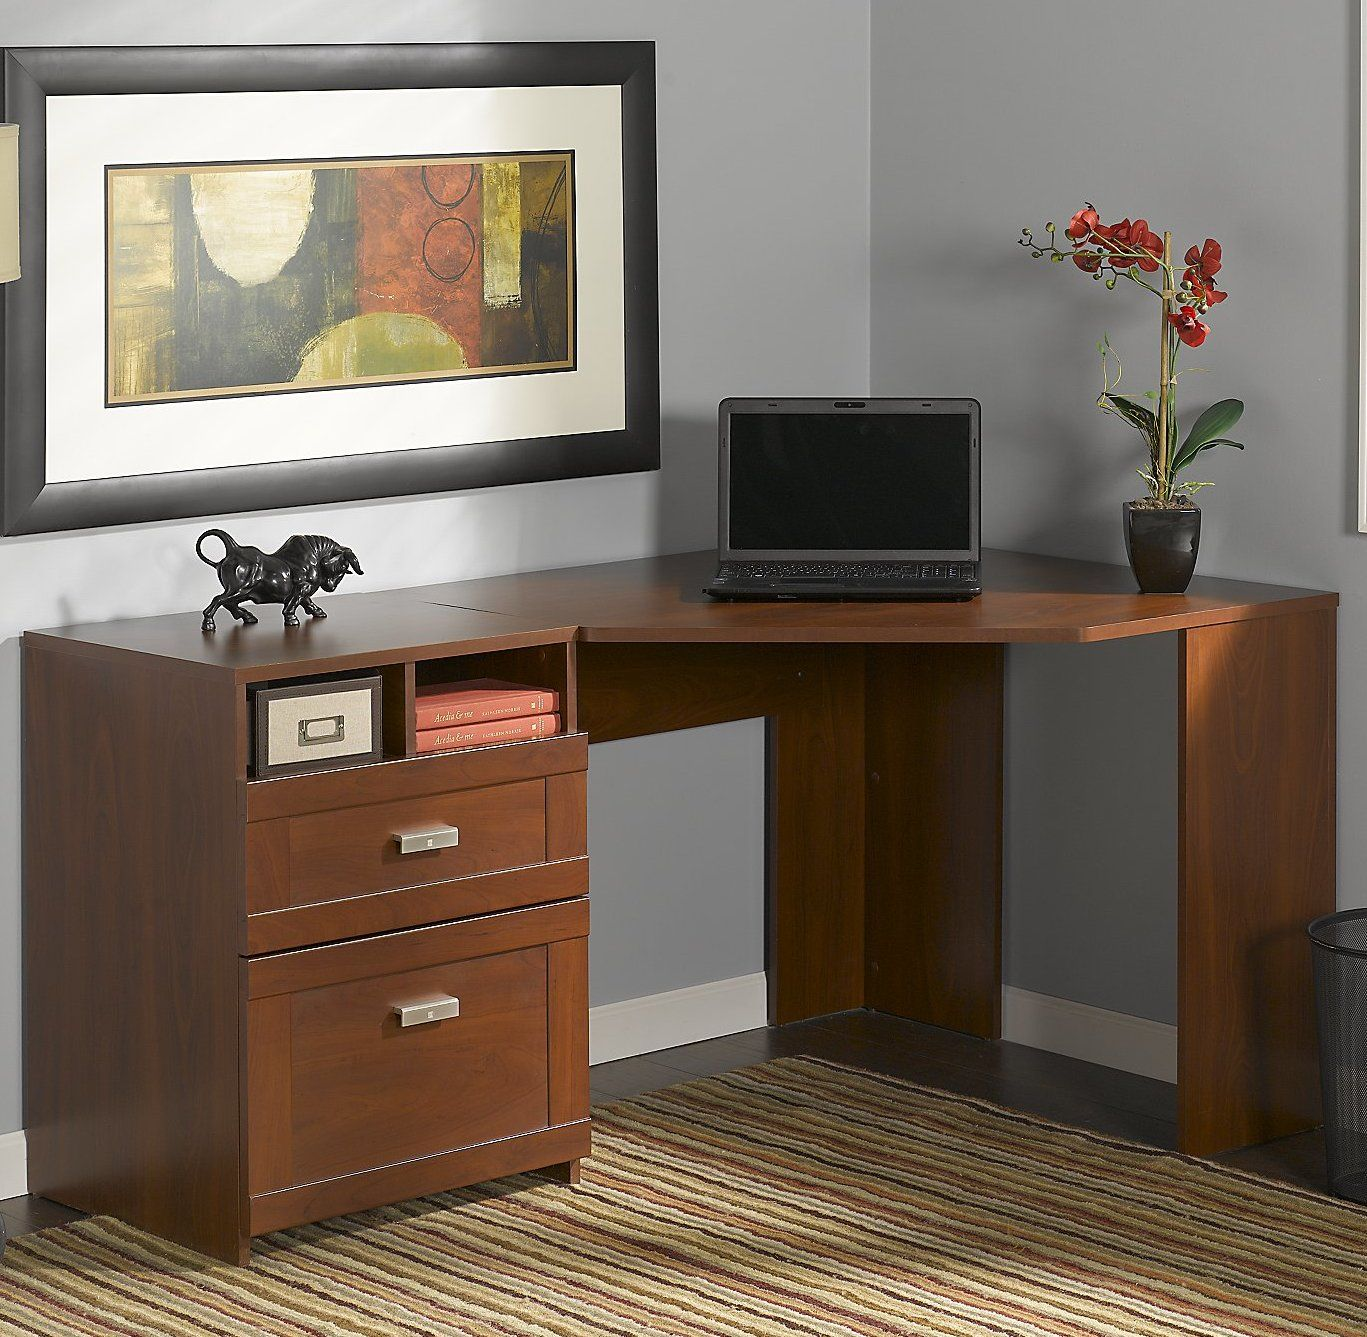 willa corner computer desk cabinet desk best home office desk rh pinterest co uk